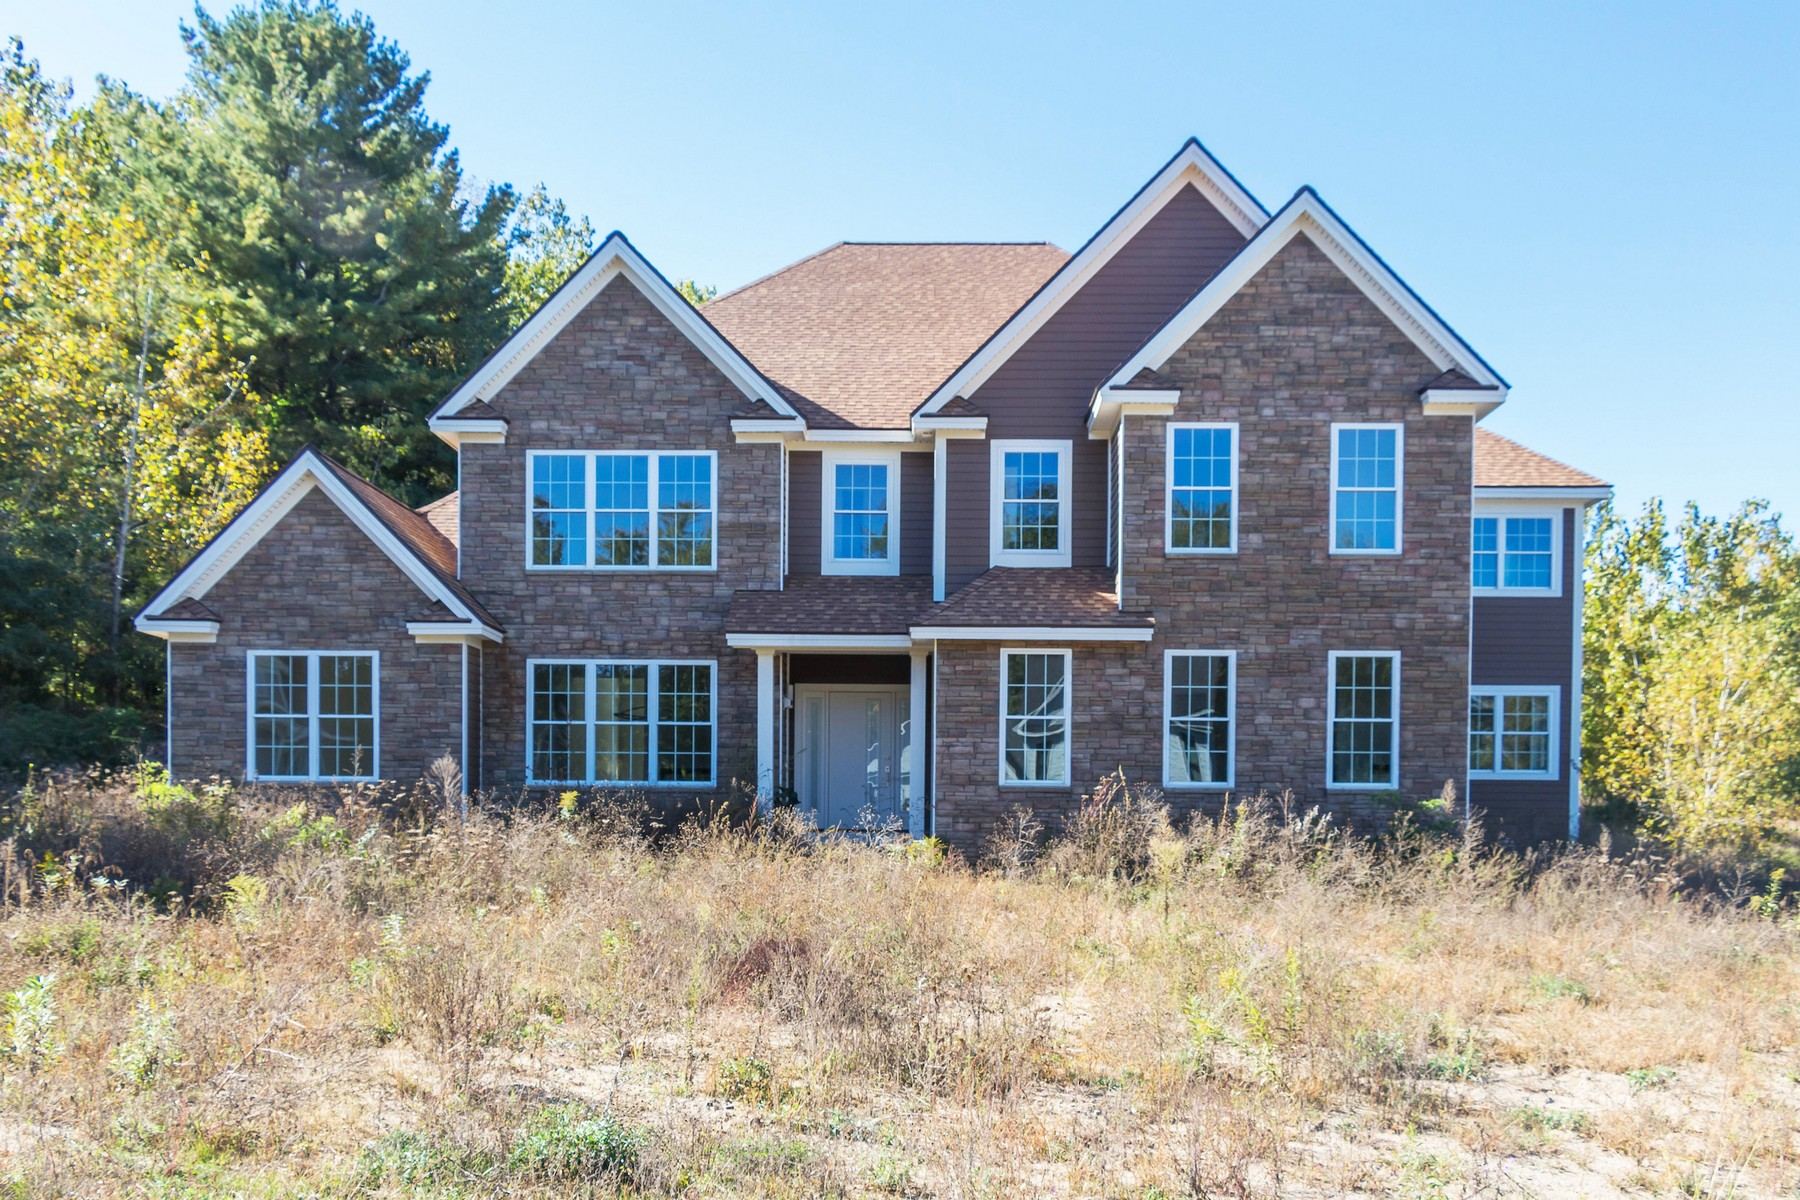 Single Family Home for Sale at New Construction Without the Wait 909 Sussex Ct Guilderland, 12084 United States